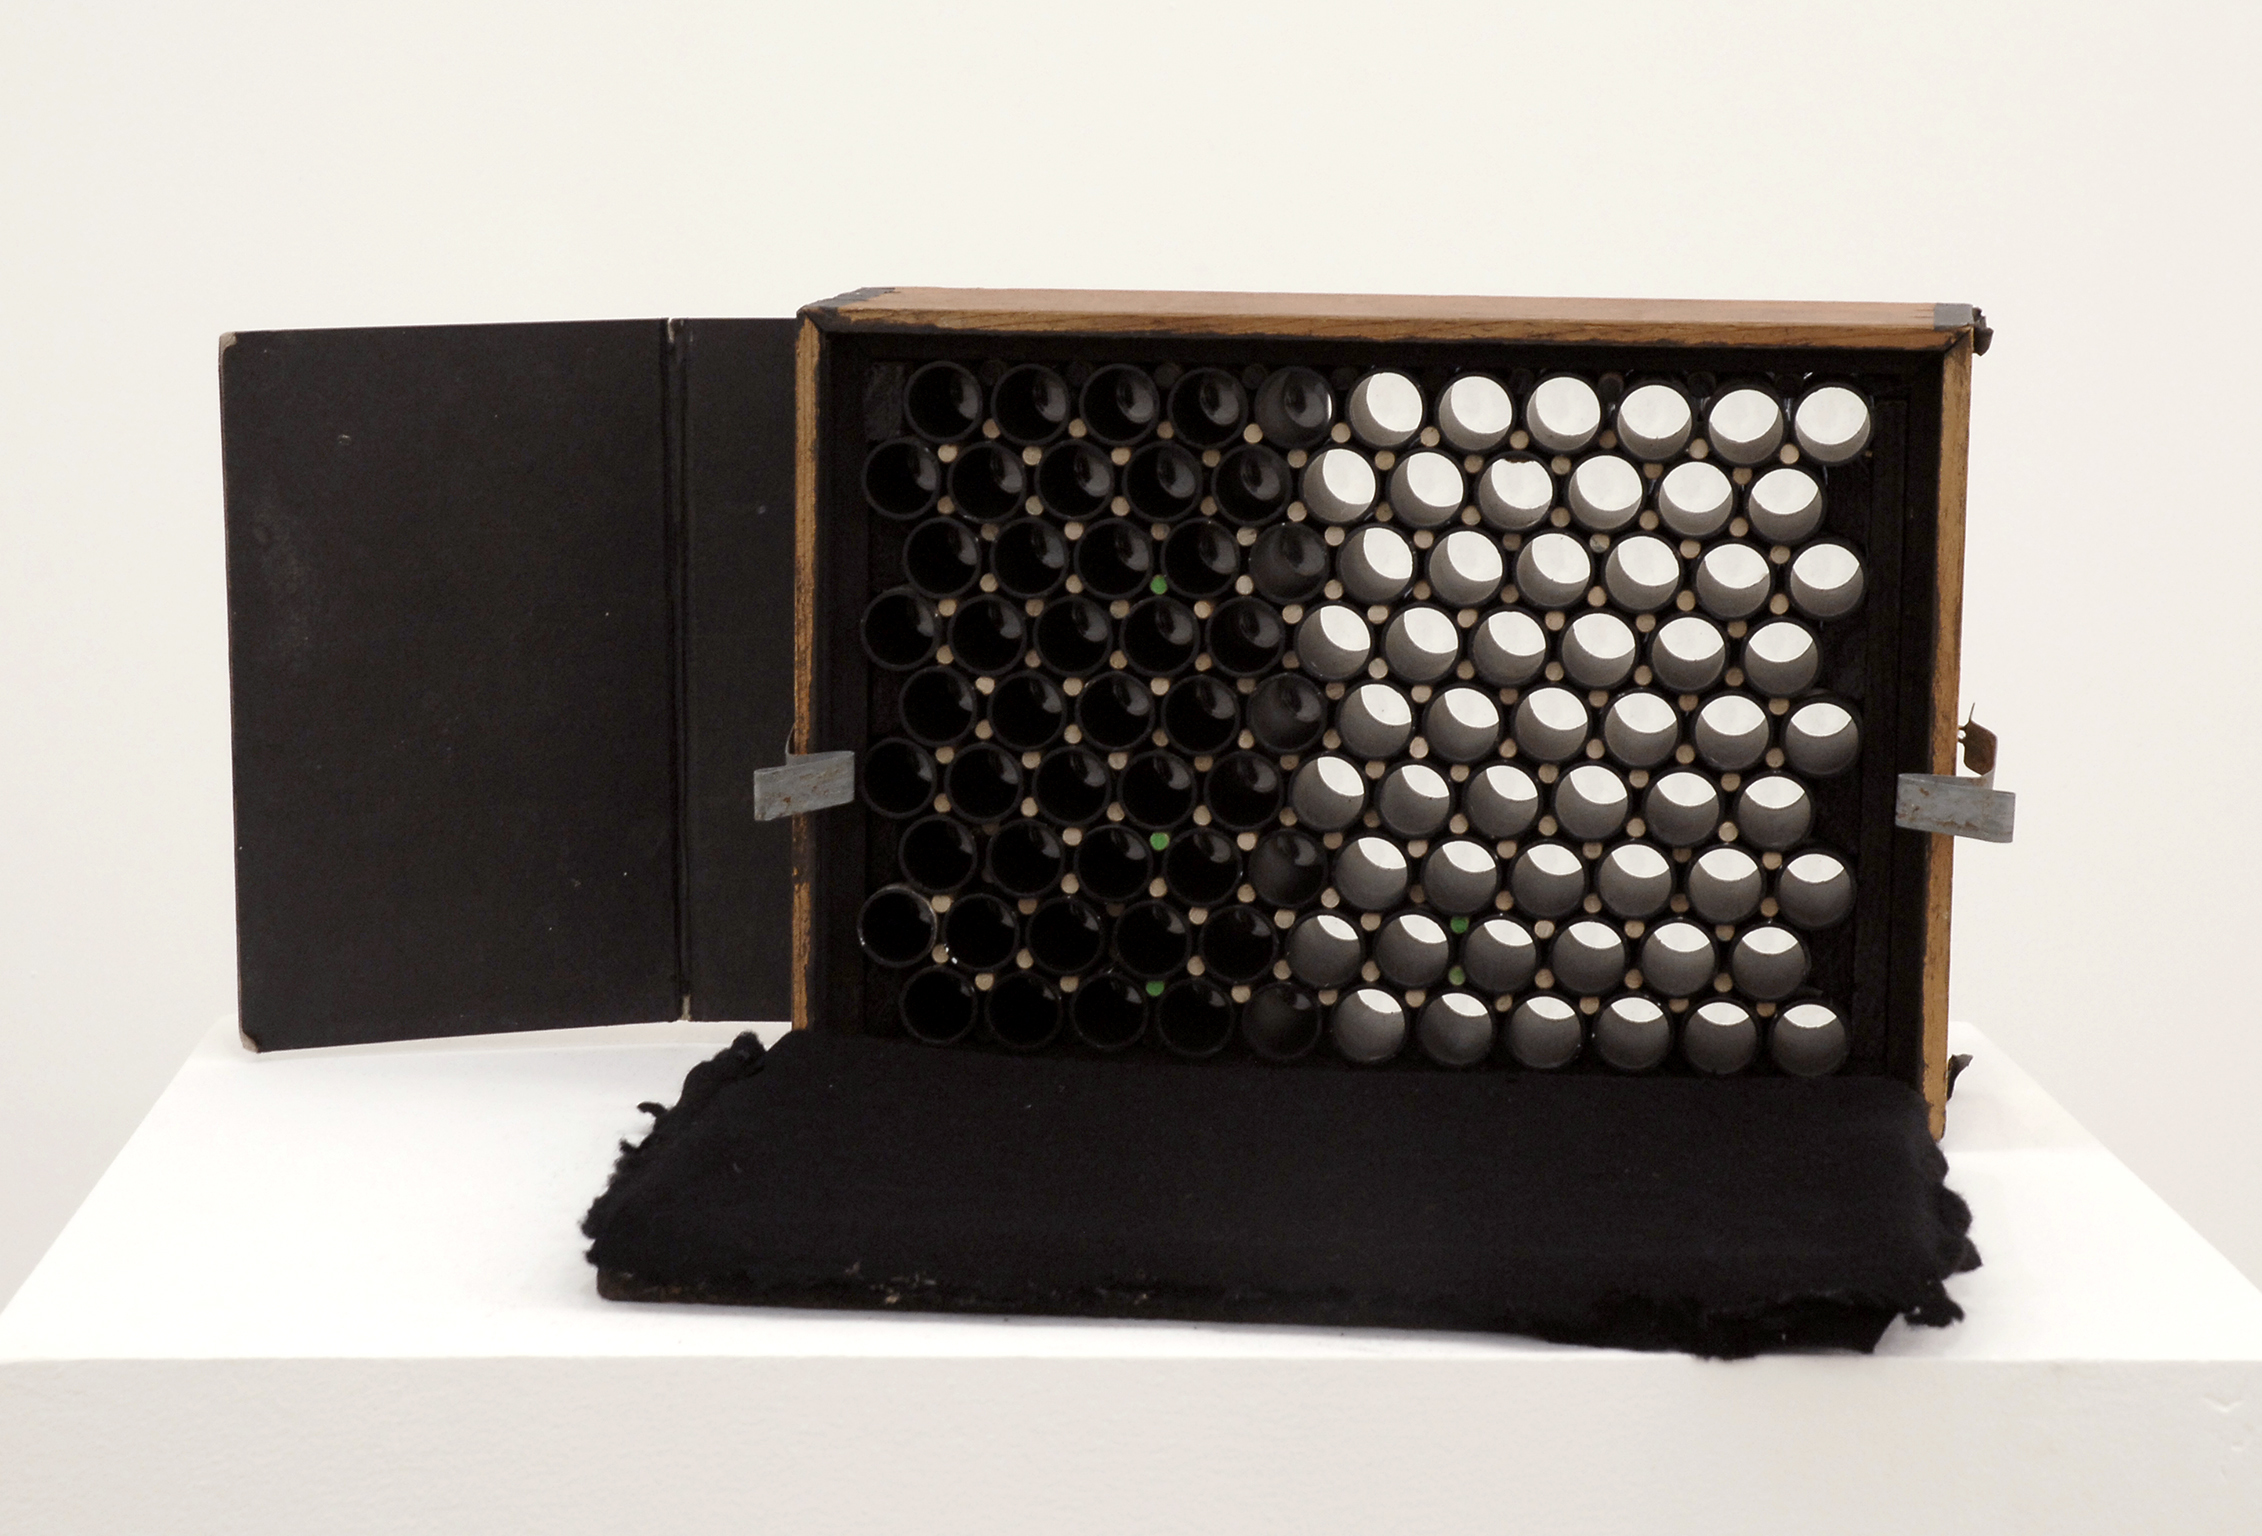 Jerry Pethick, Array Camera, 1988, 99 lenses, wood, felt, game board, glass, plastic pipe, 11 x 15 x 6 in. (27 x 38 x 14 cm) by